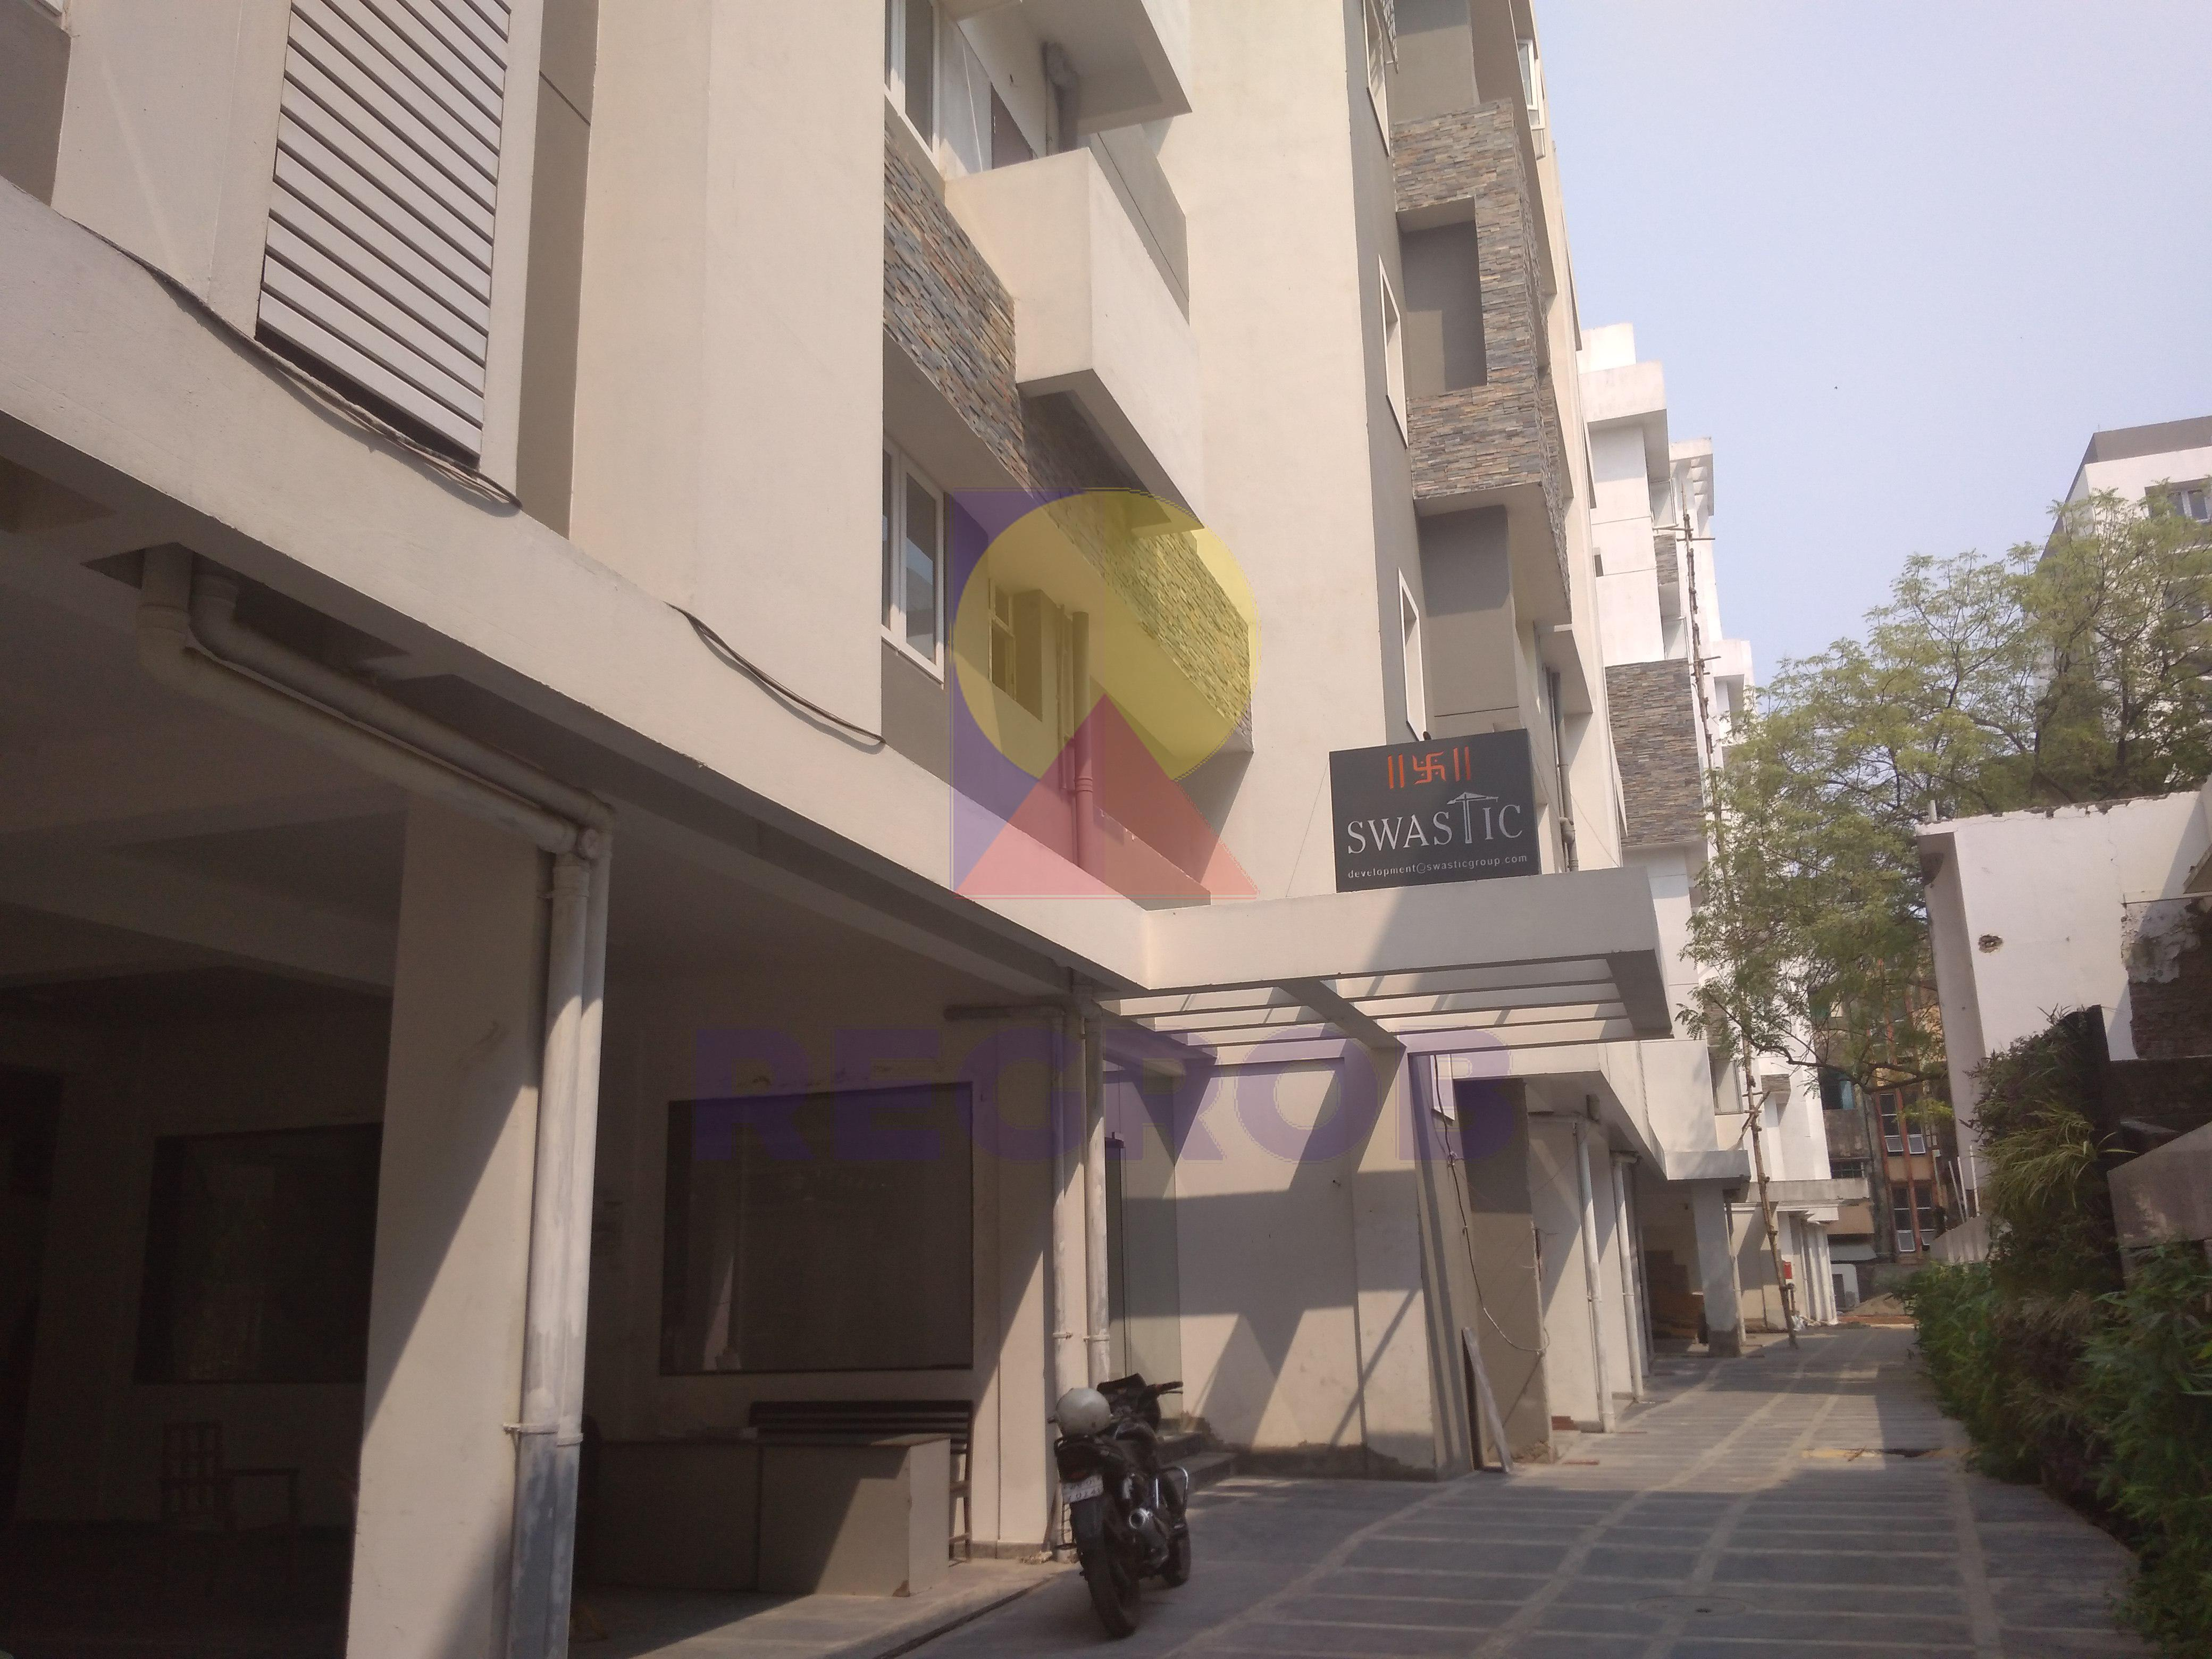 Swastic 83 Ballygunge Place